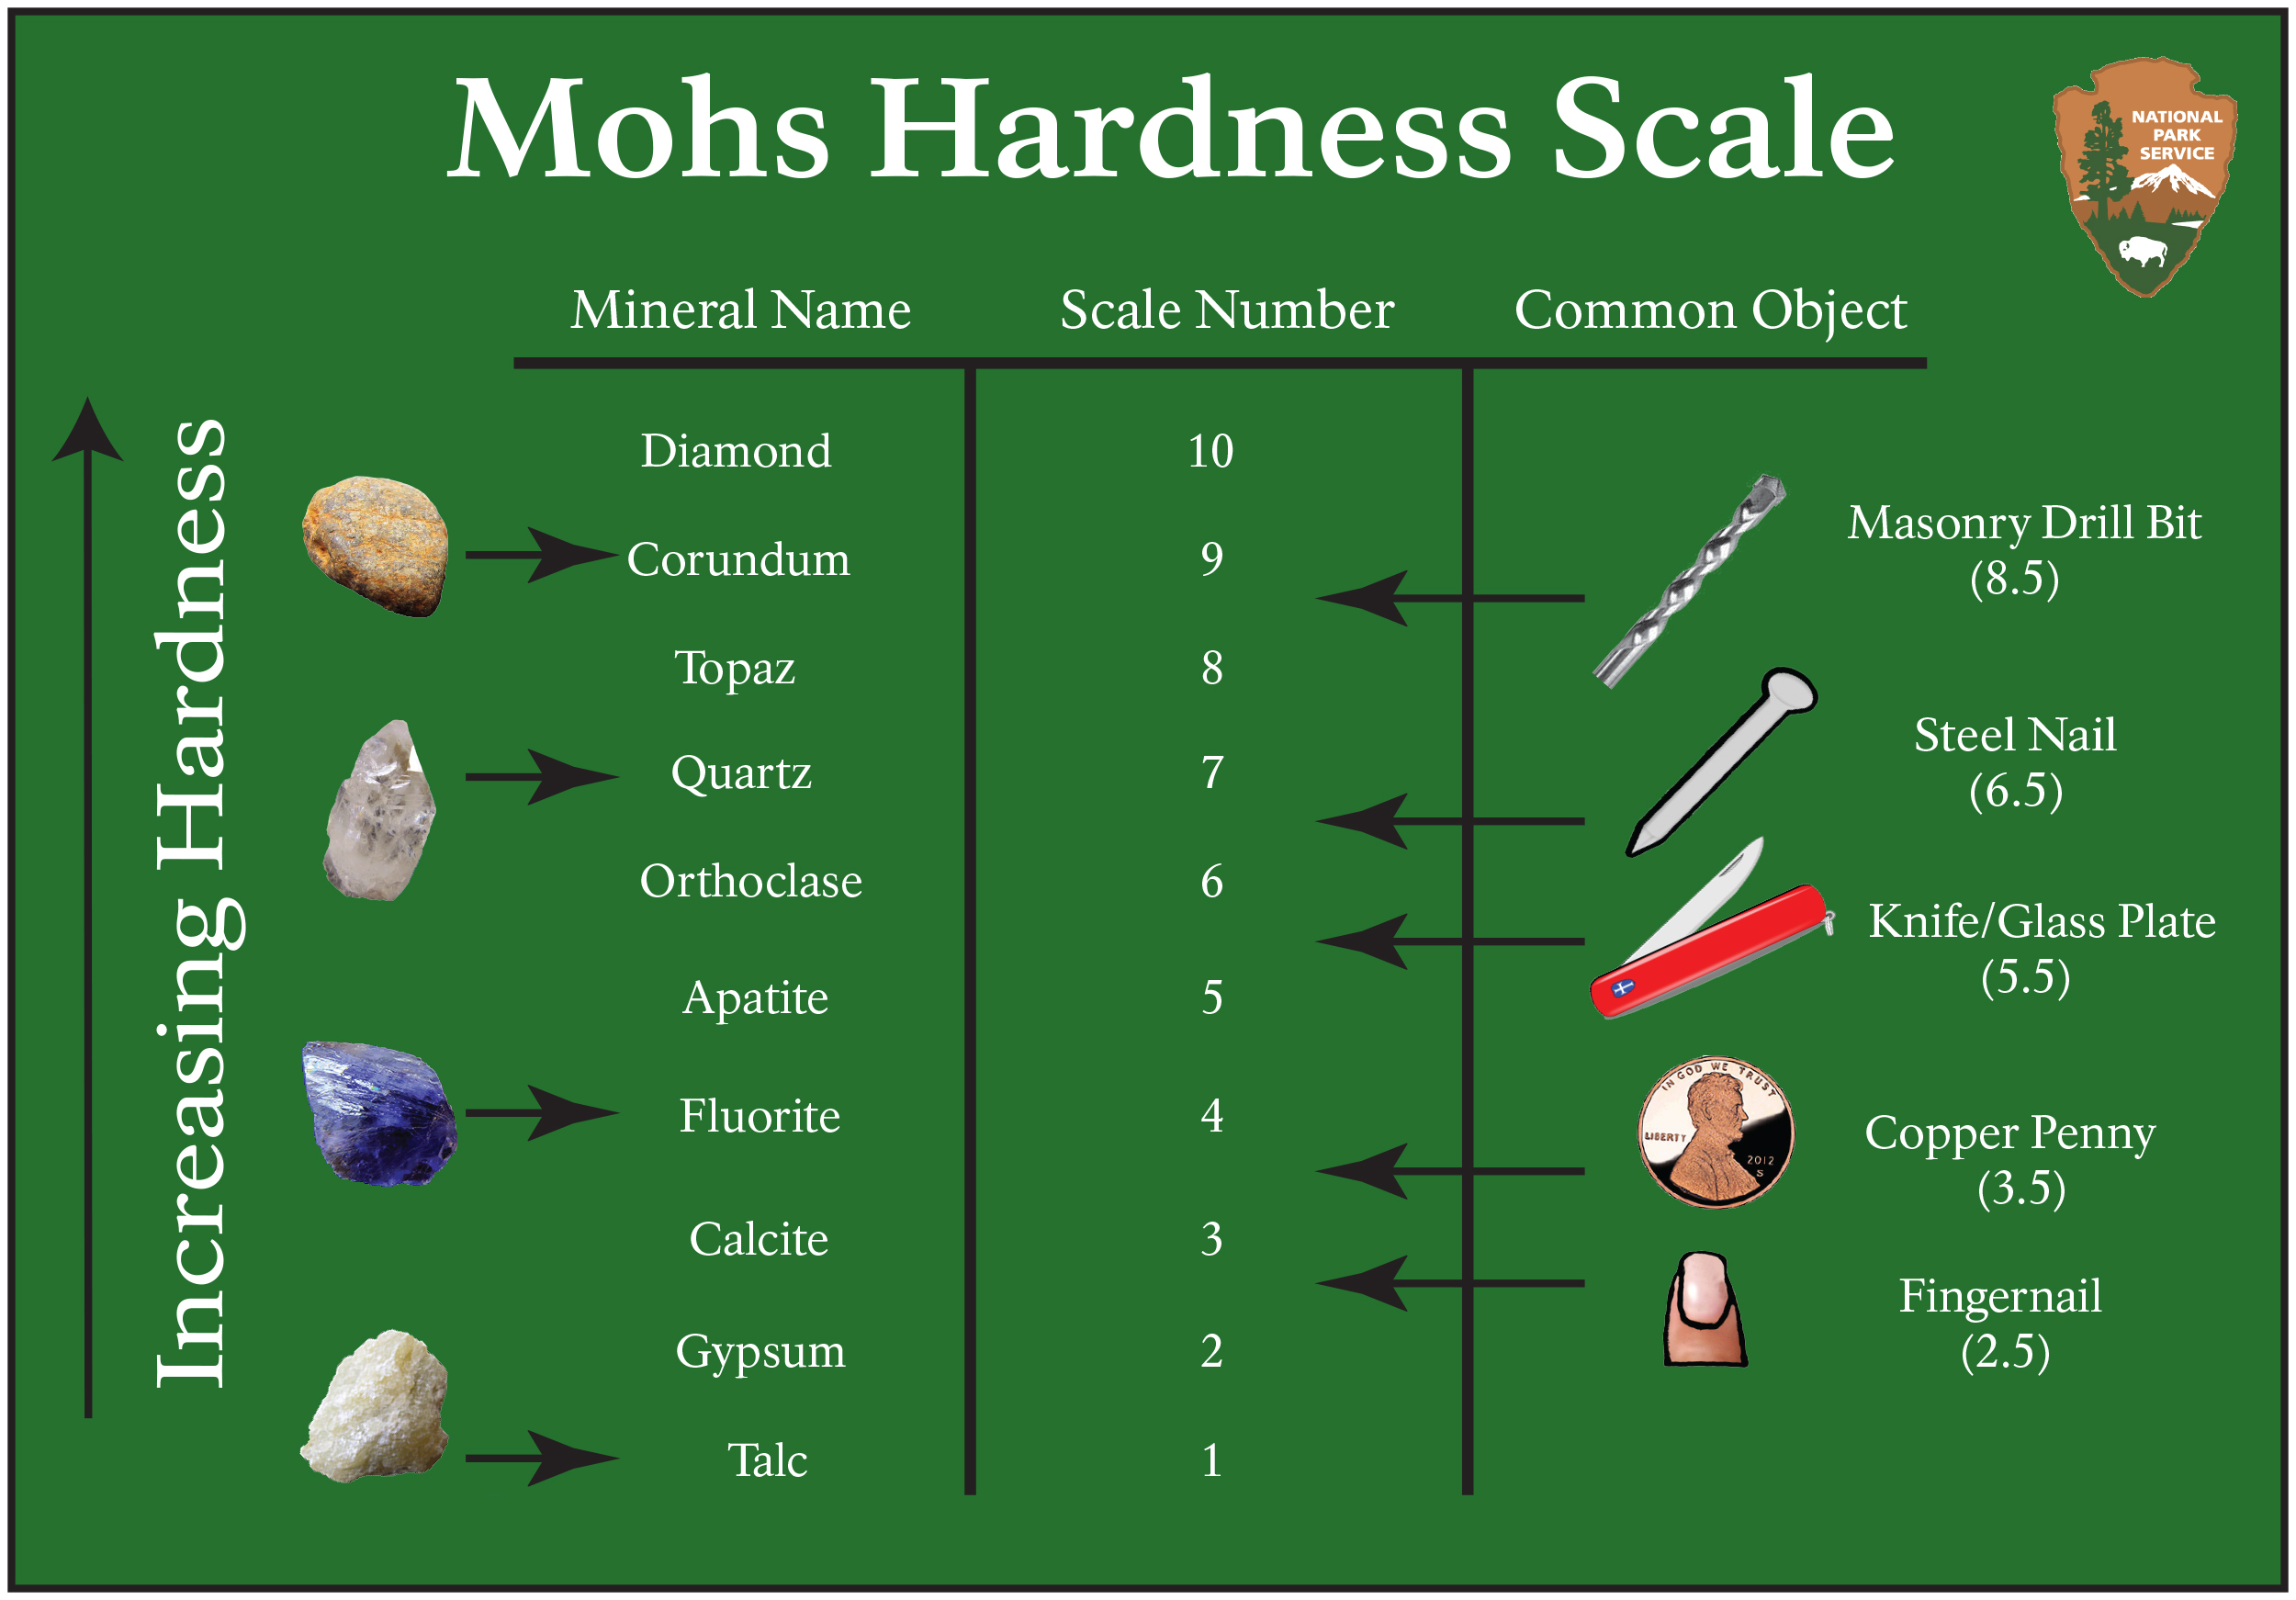 Mohs Hardness Scale (us National Park Service